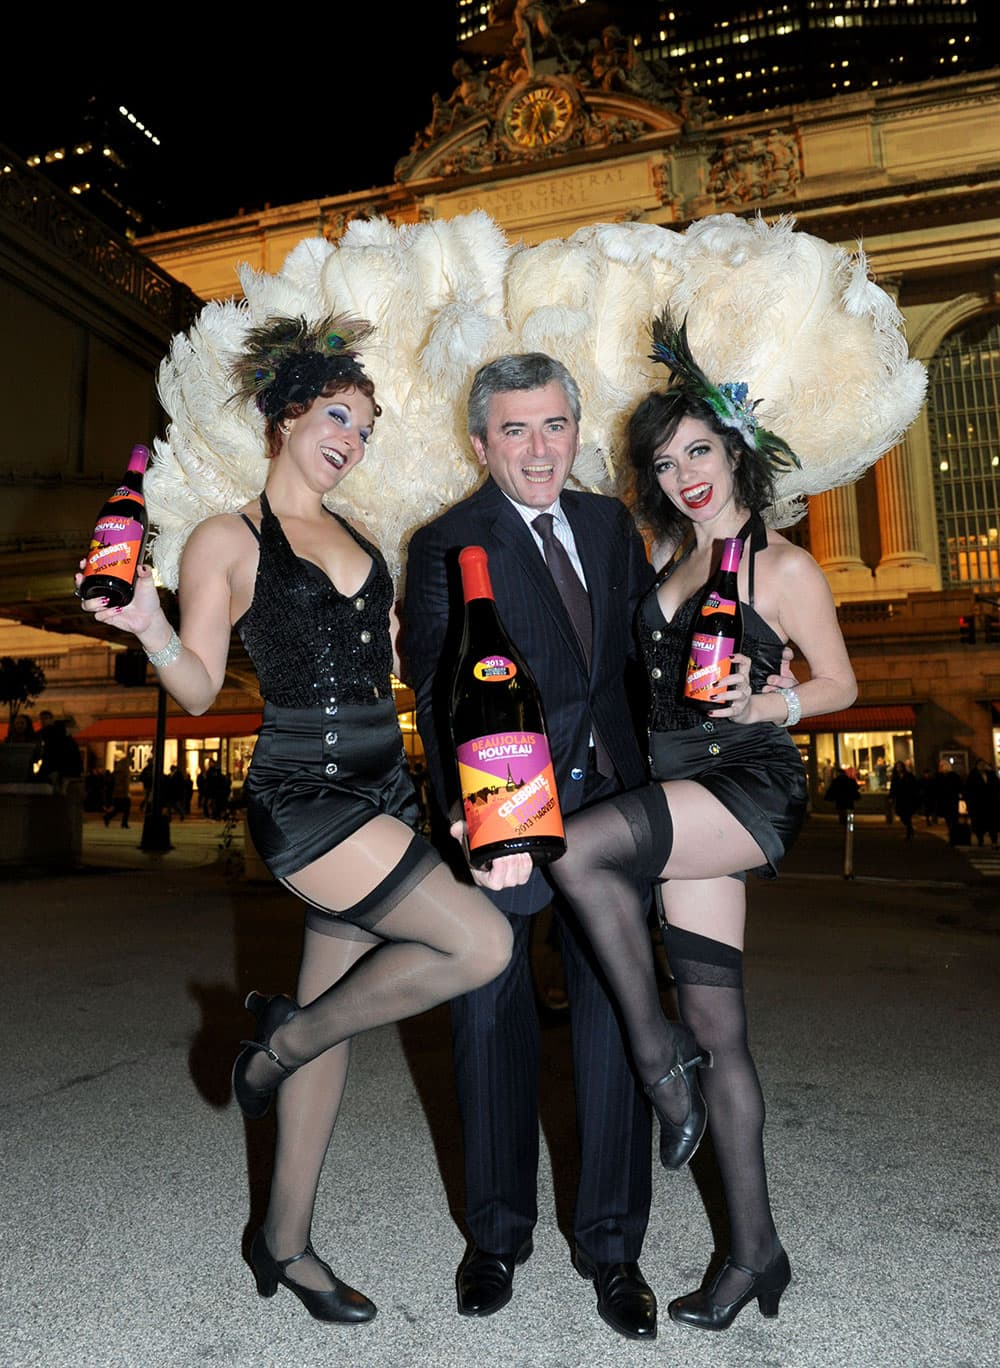 Franck Duboeuf, joined by Jazz Age dancers, unveils the first bottle of the 2013 Georges Duboeuf Beaujolais Nouveau in the US, outside Grand Central Terminal in New York.